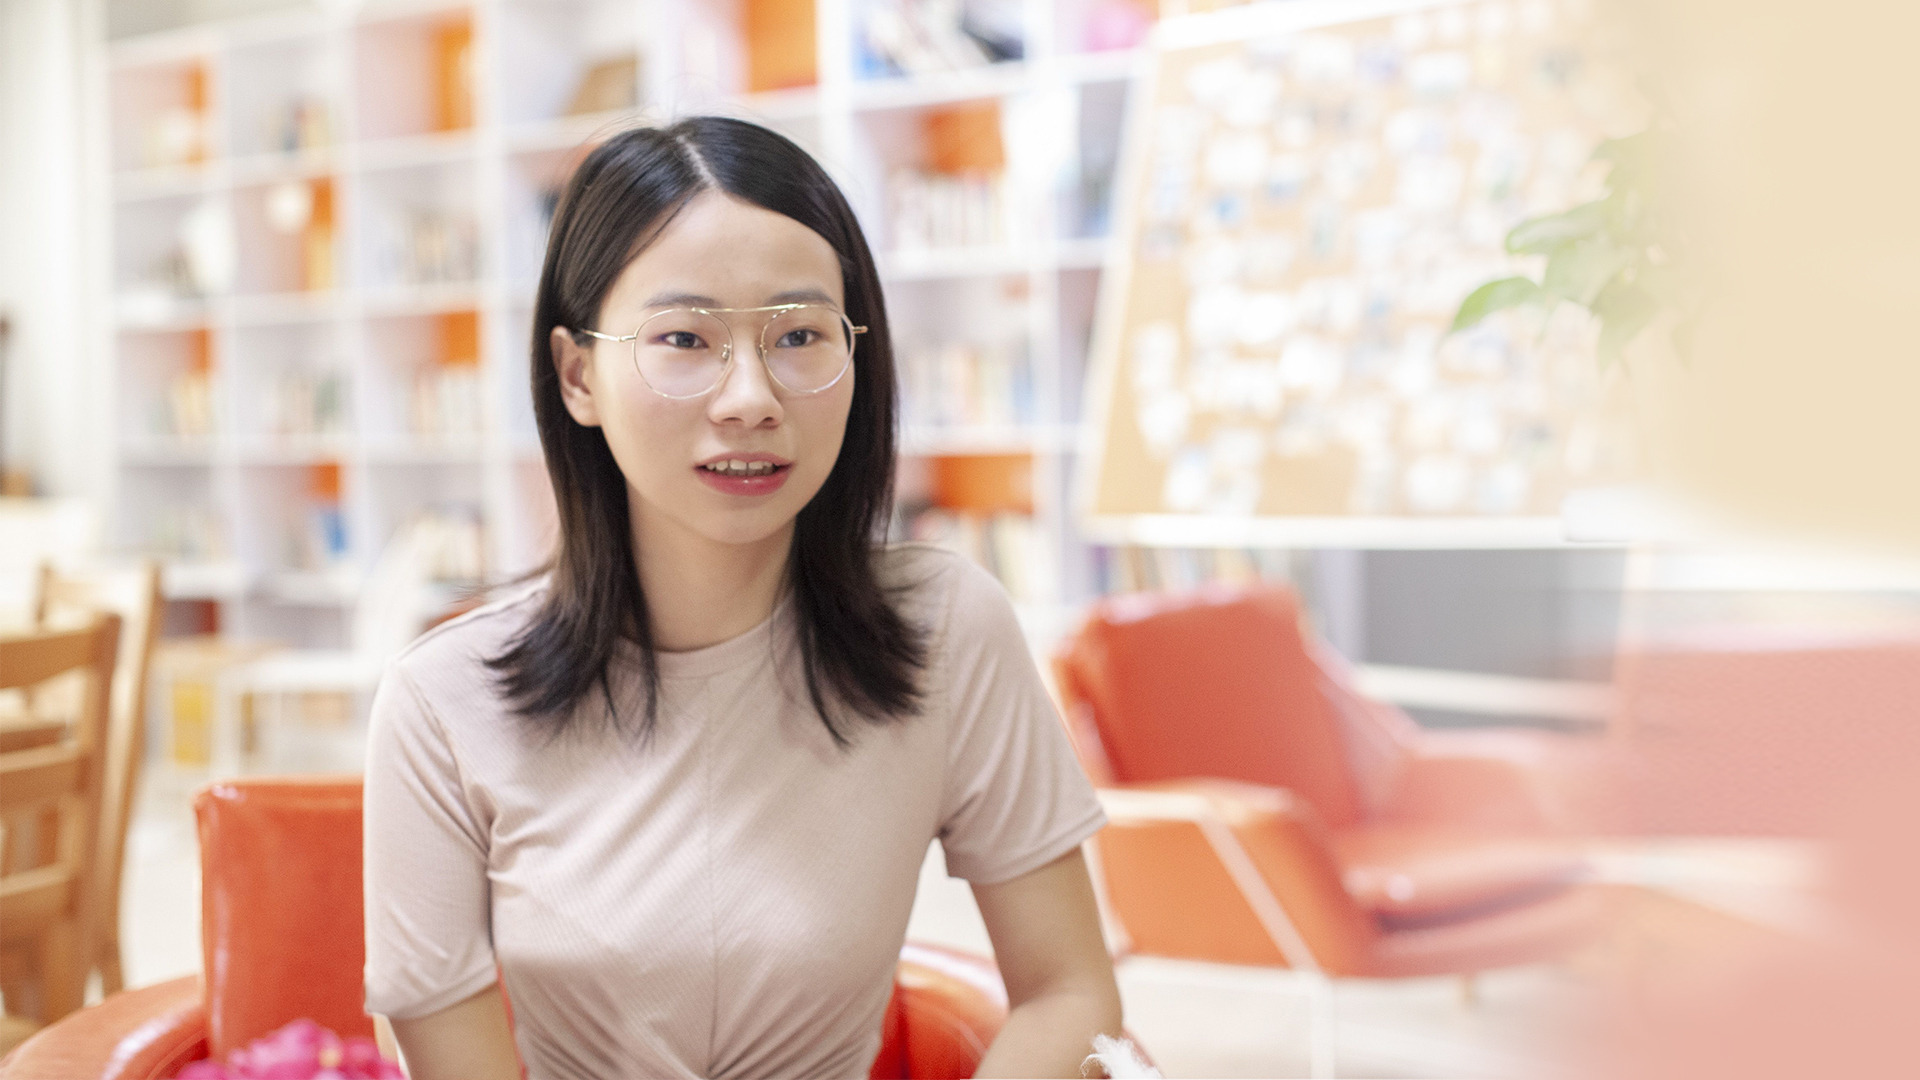 Top Ten Graduate Liu Lingjie: Finding a new challenge in cancer research